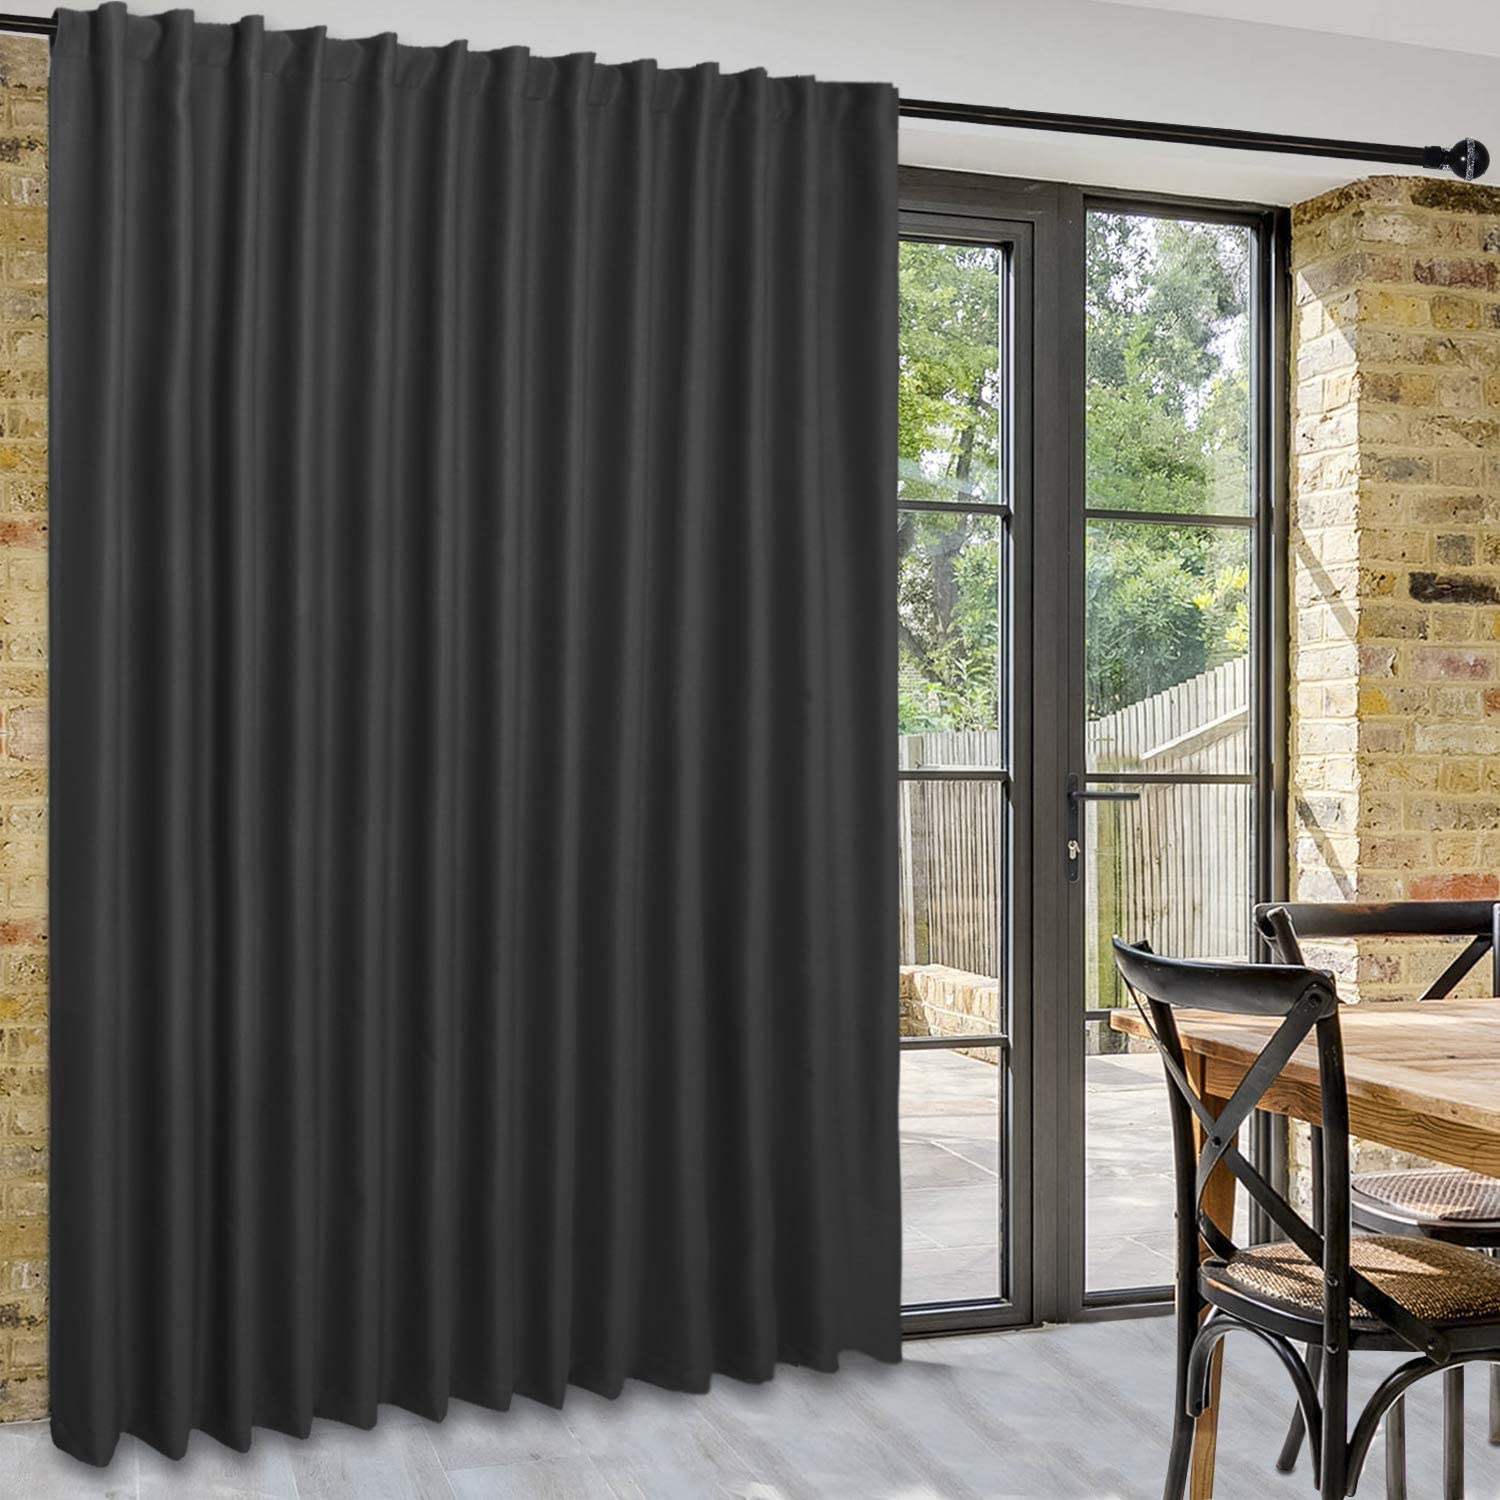 Amazon Com Dwcn Patio Sliding Door Curtains Extra Wide Curtains For Glass Door Privacy Room Divider Blackout Thermal Curtain Panel With Back Tab Rod Pocket For Bedroom Partition 80 X 84